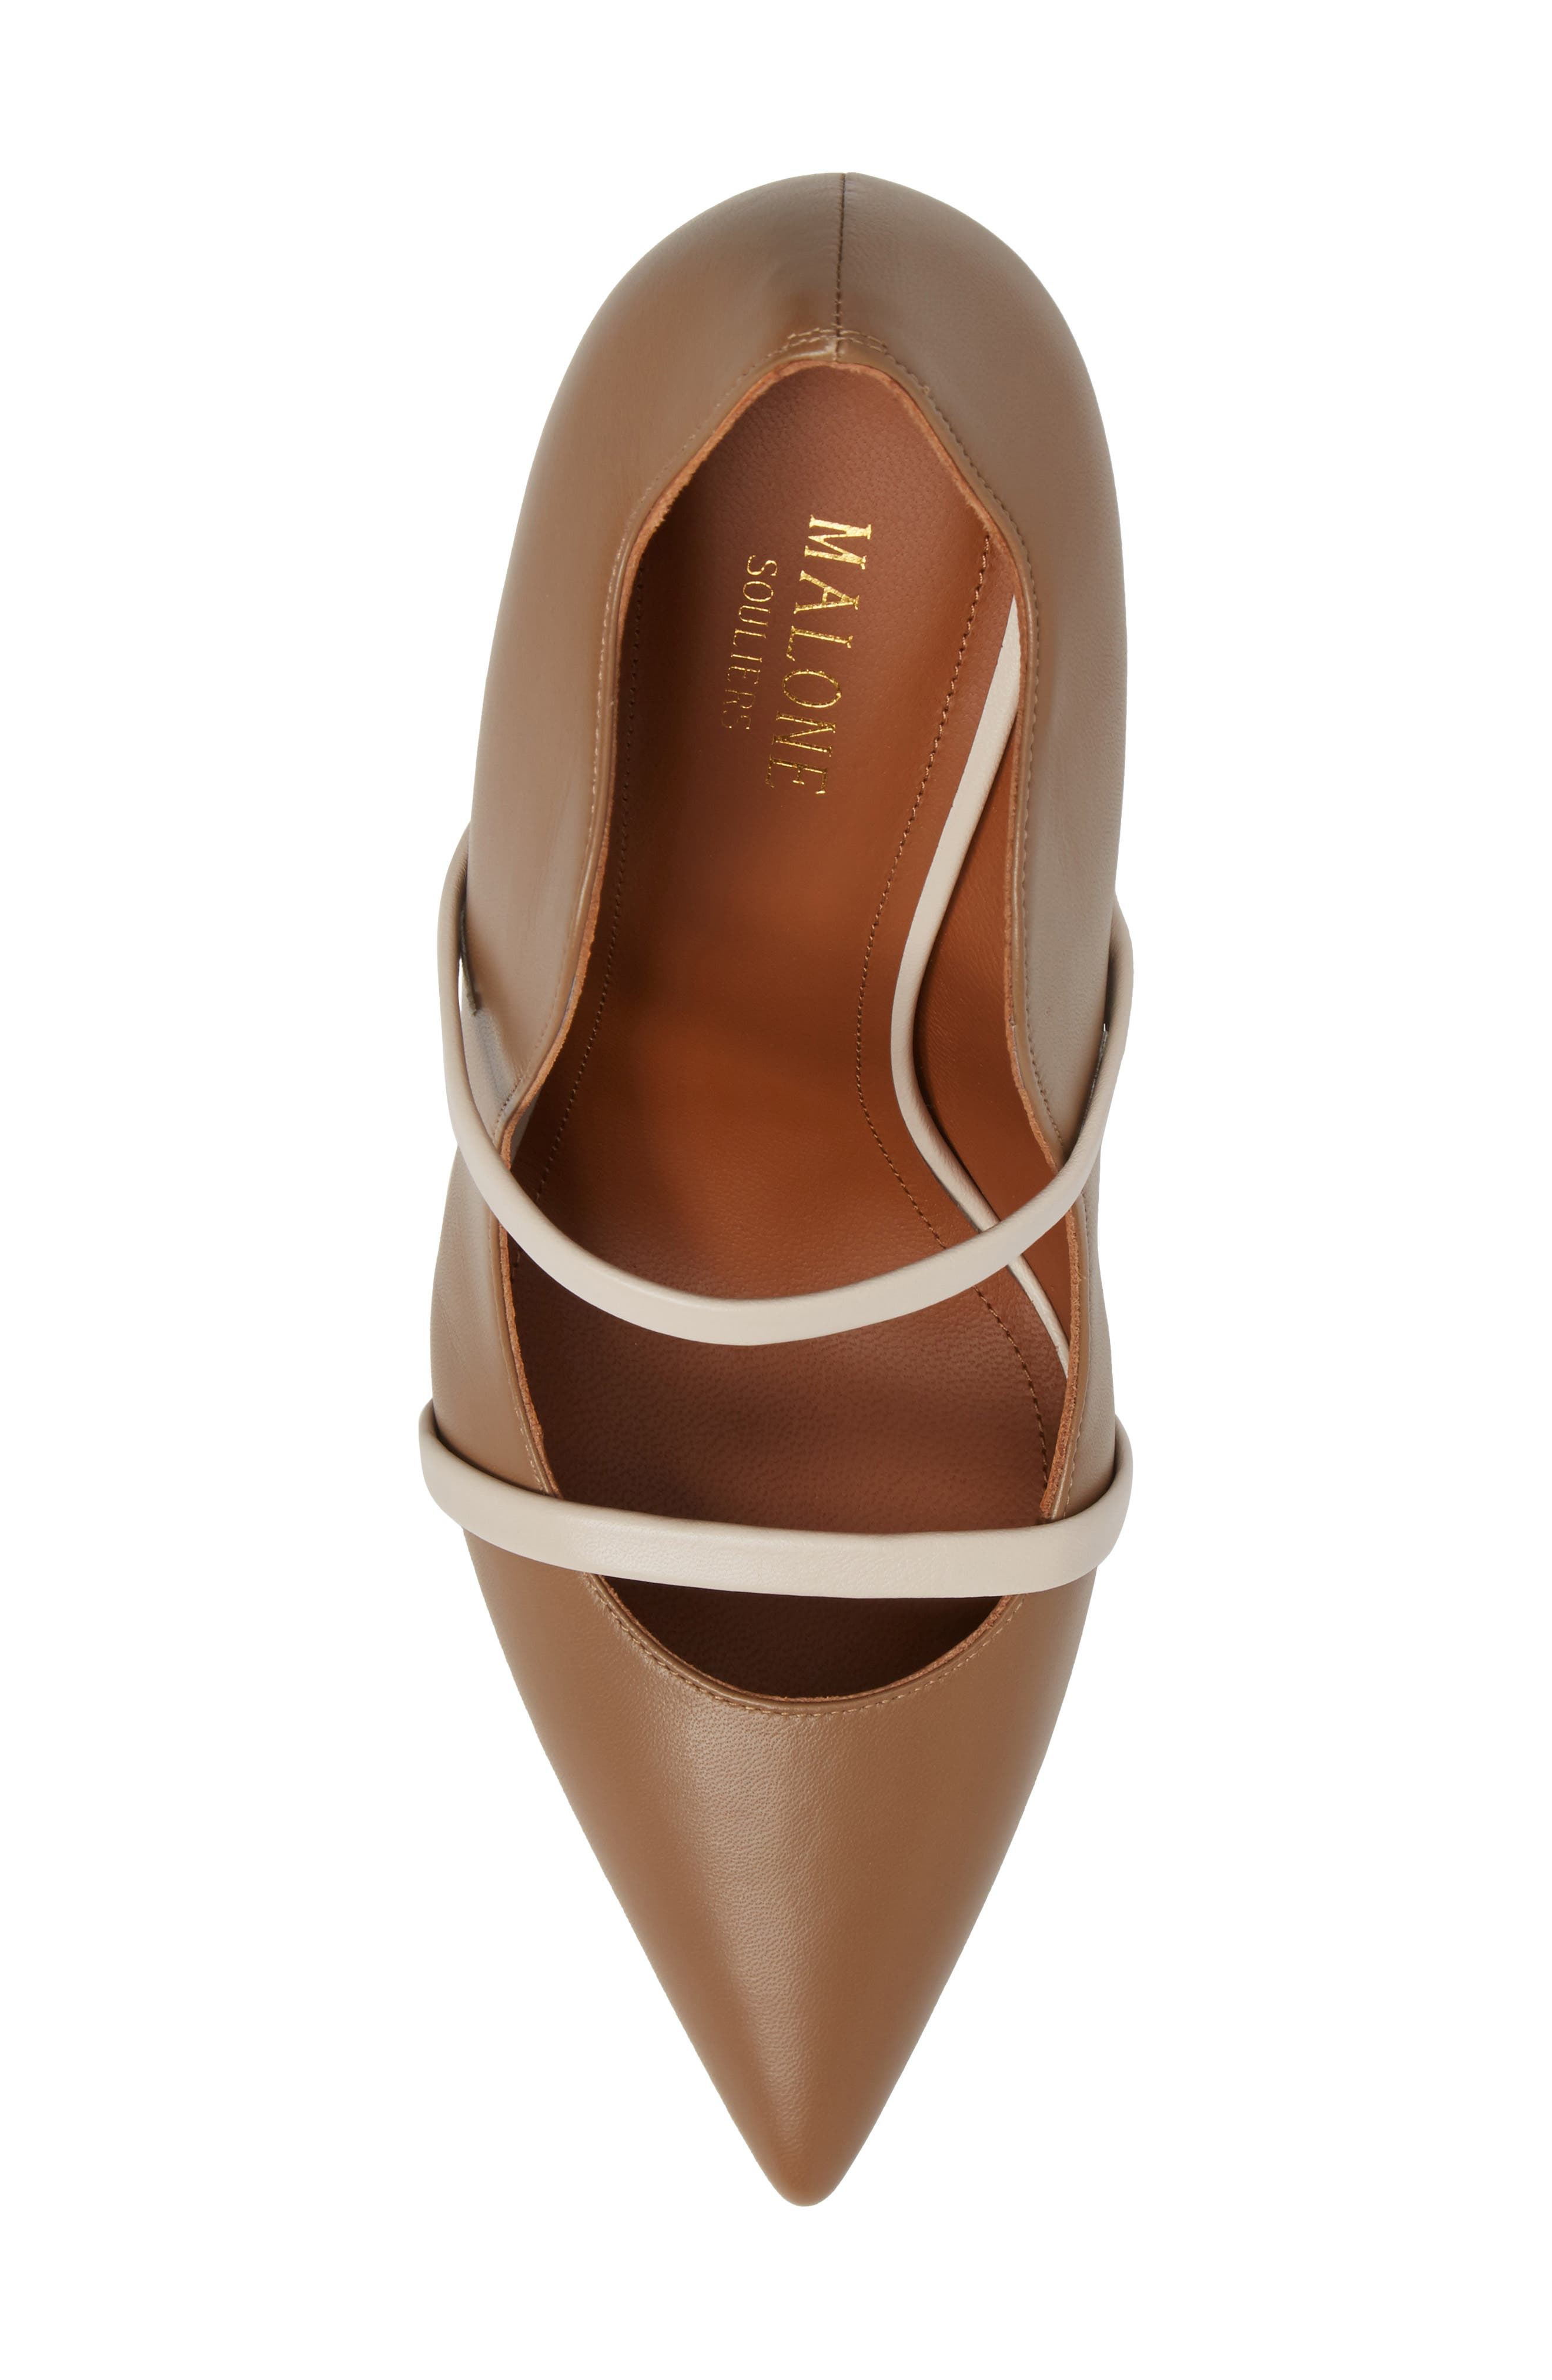 Maureen Double Band Pump,                             Alternate thumbnail 5, color,                             Chocolate/ White Leather